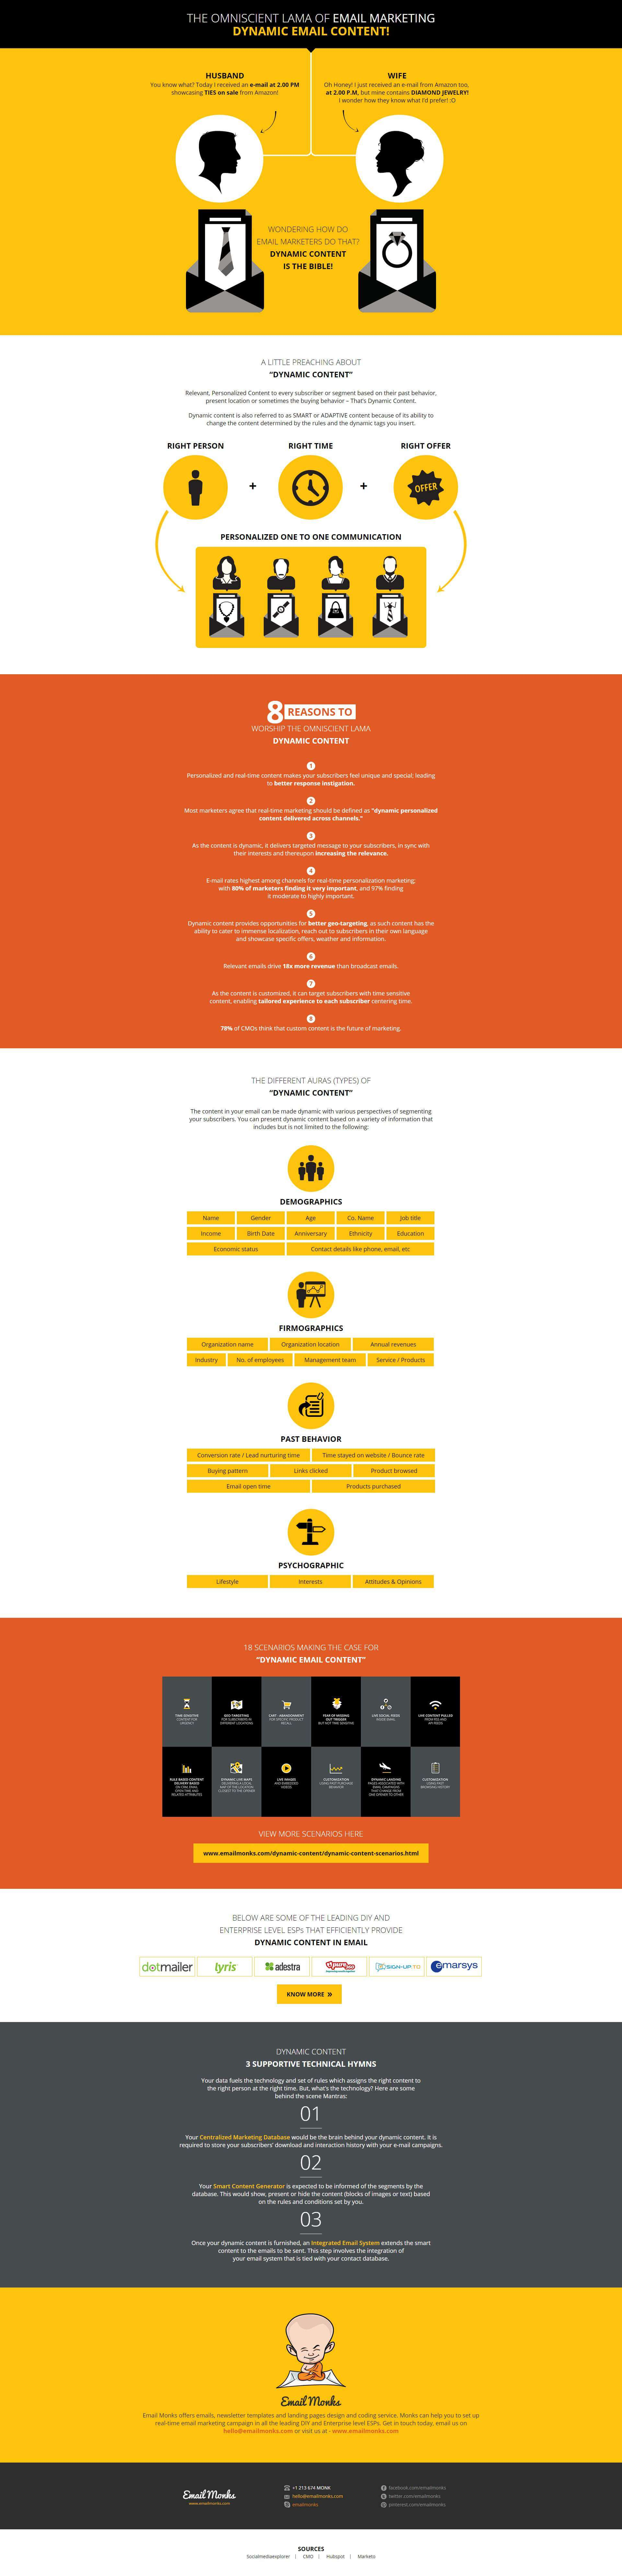 Dynamic Content in Email Infographic